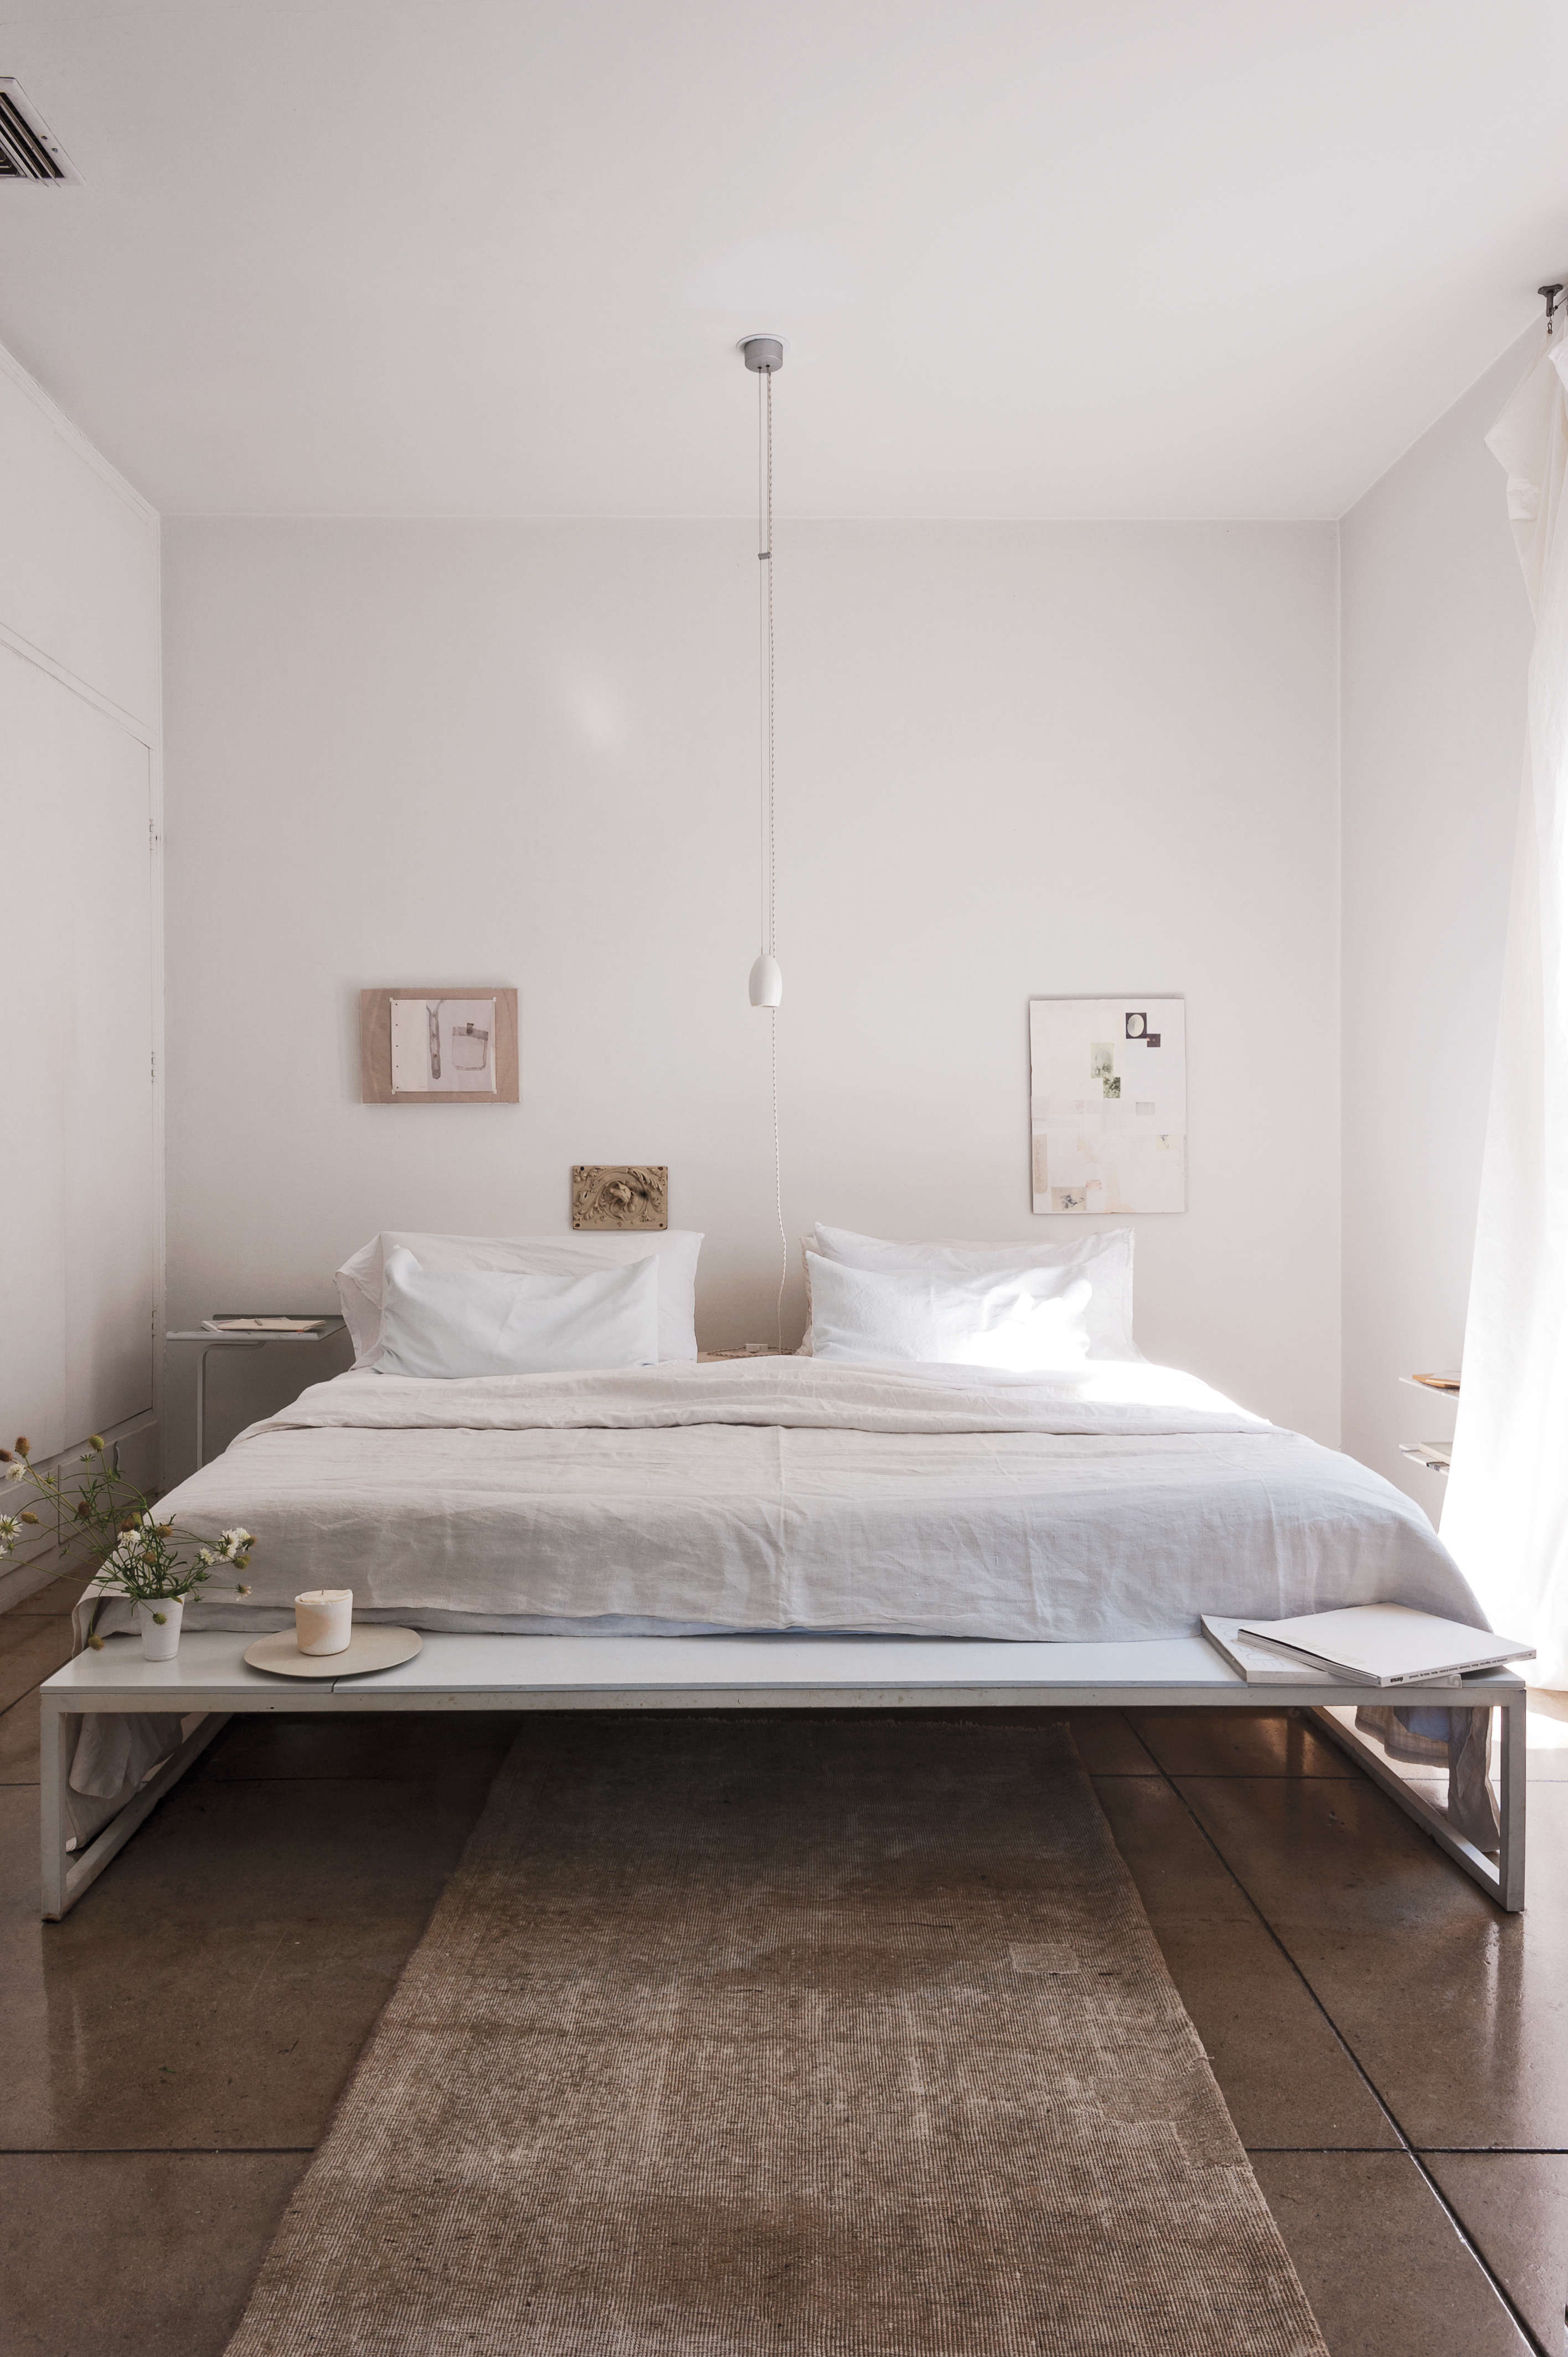 How to make any room look bigger just by painting it the - Expert Advice 11 Tips For Making A Room Look Bigger